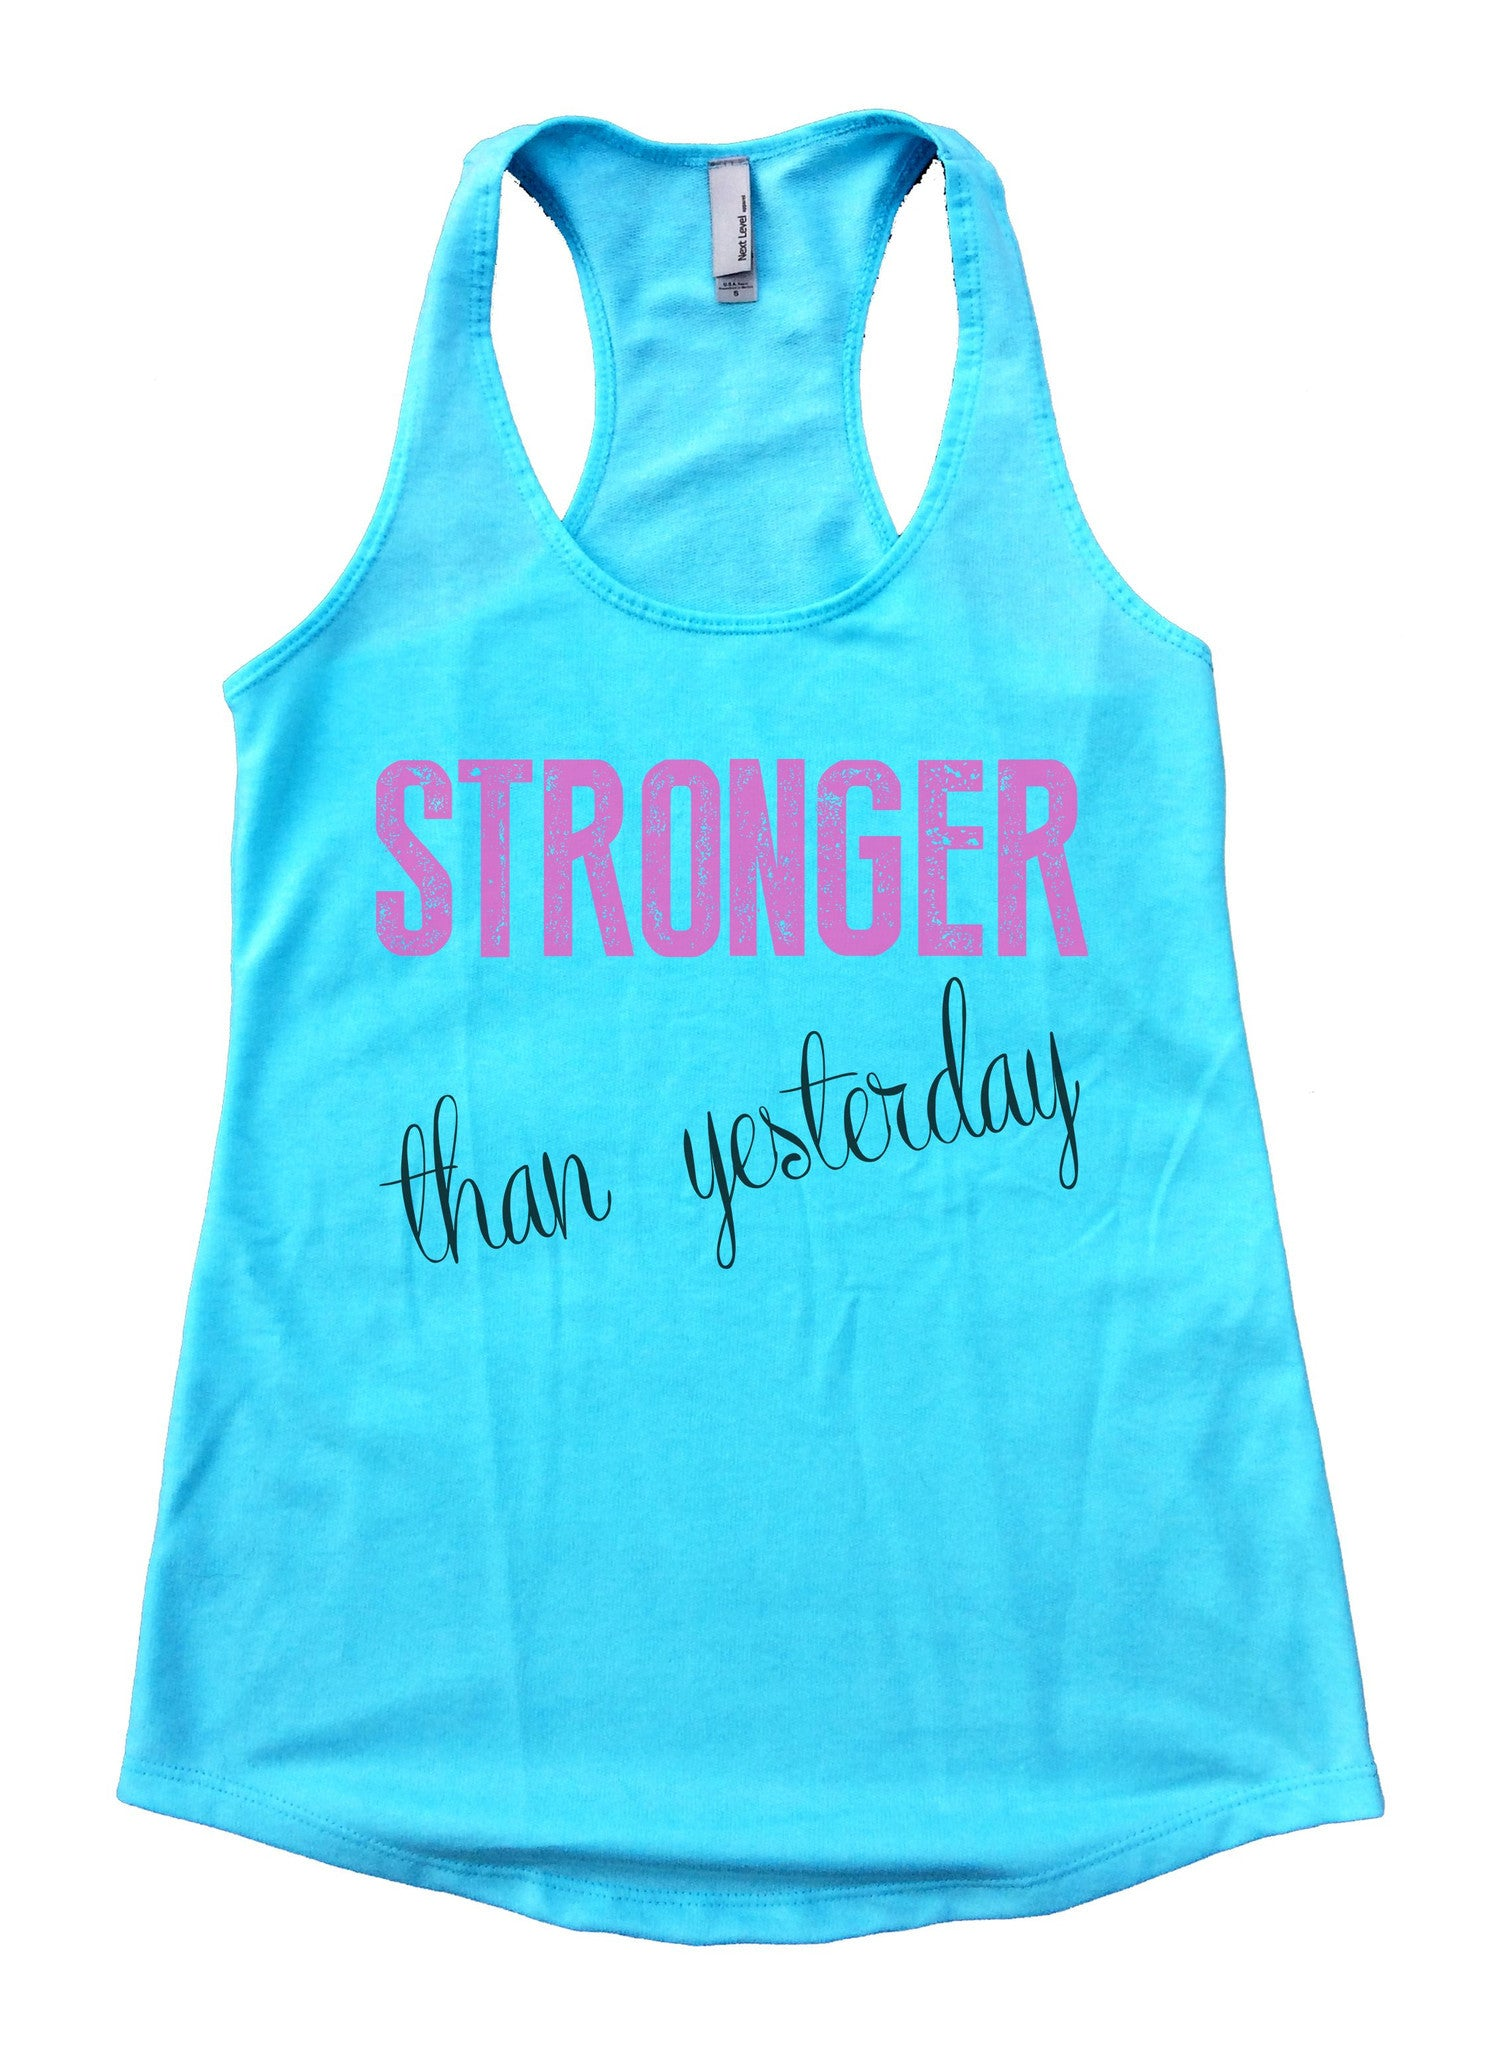 Stronger Than Yesterday Womens Workout Tank Top F768 - Funny Shirts Tank Tops Burnouts and Triblends  - 1